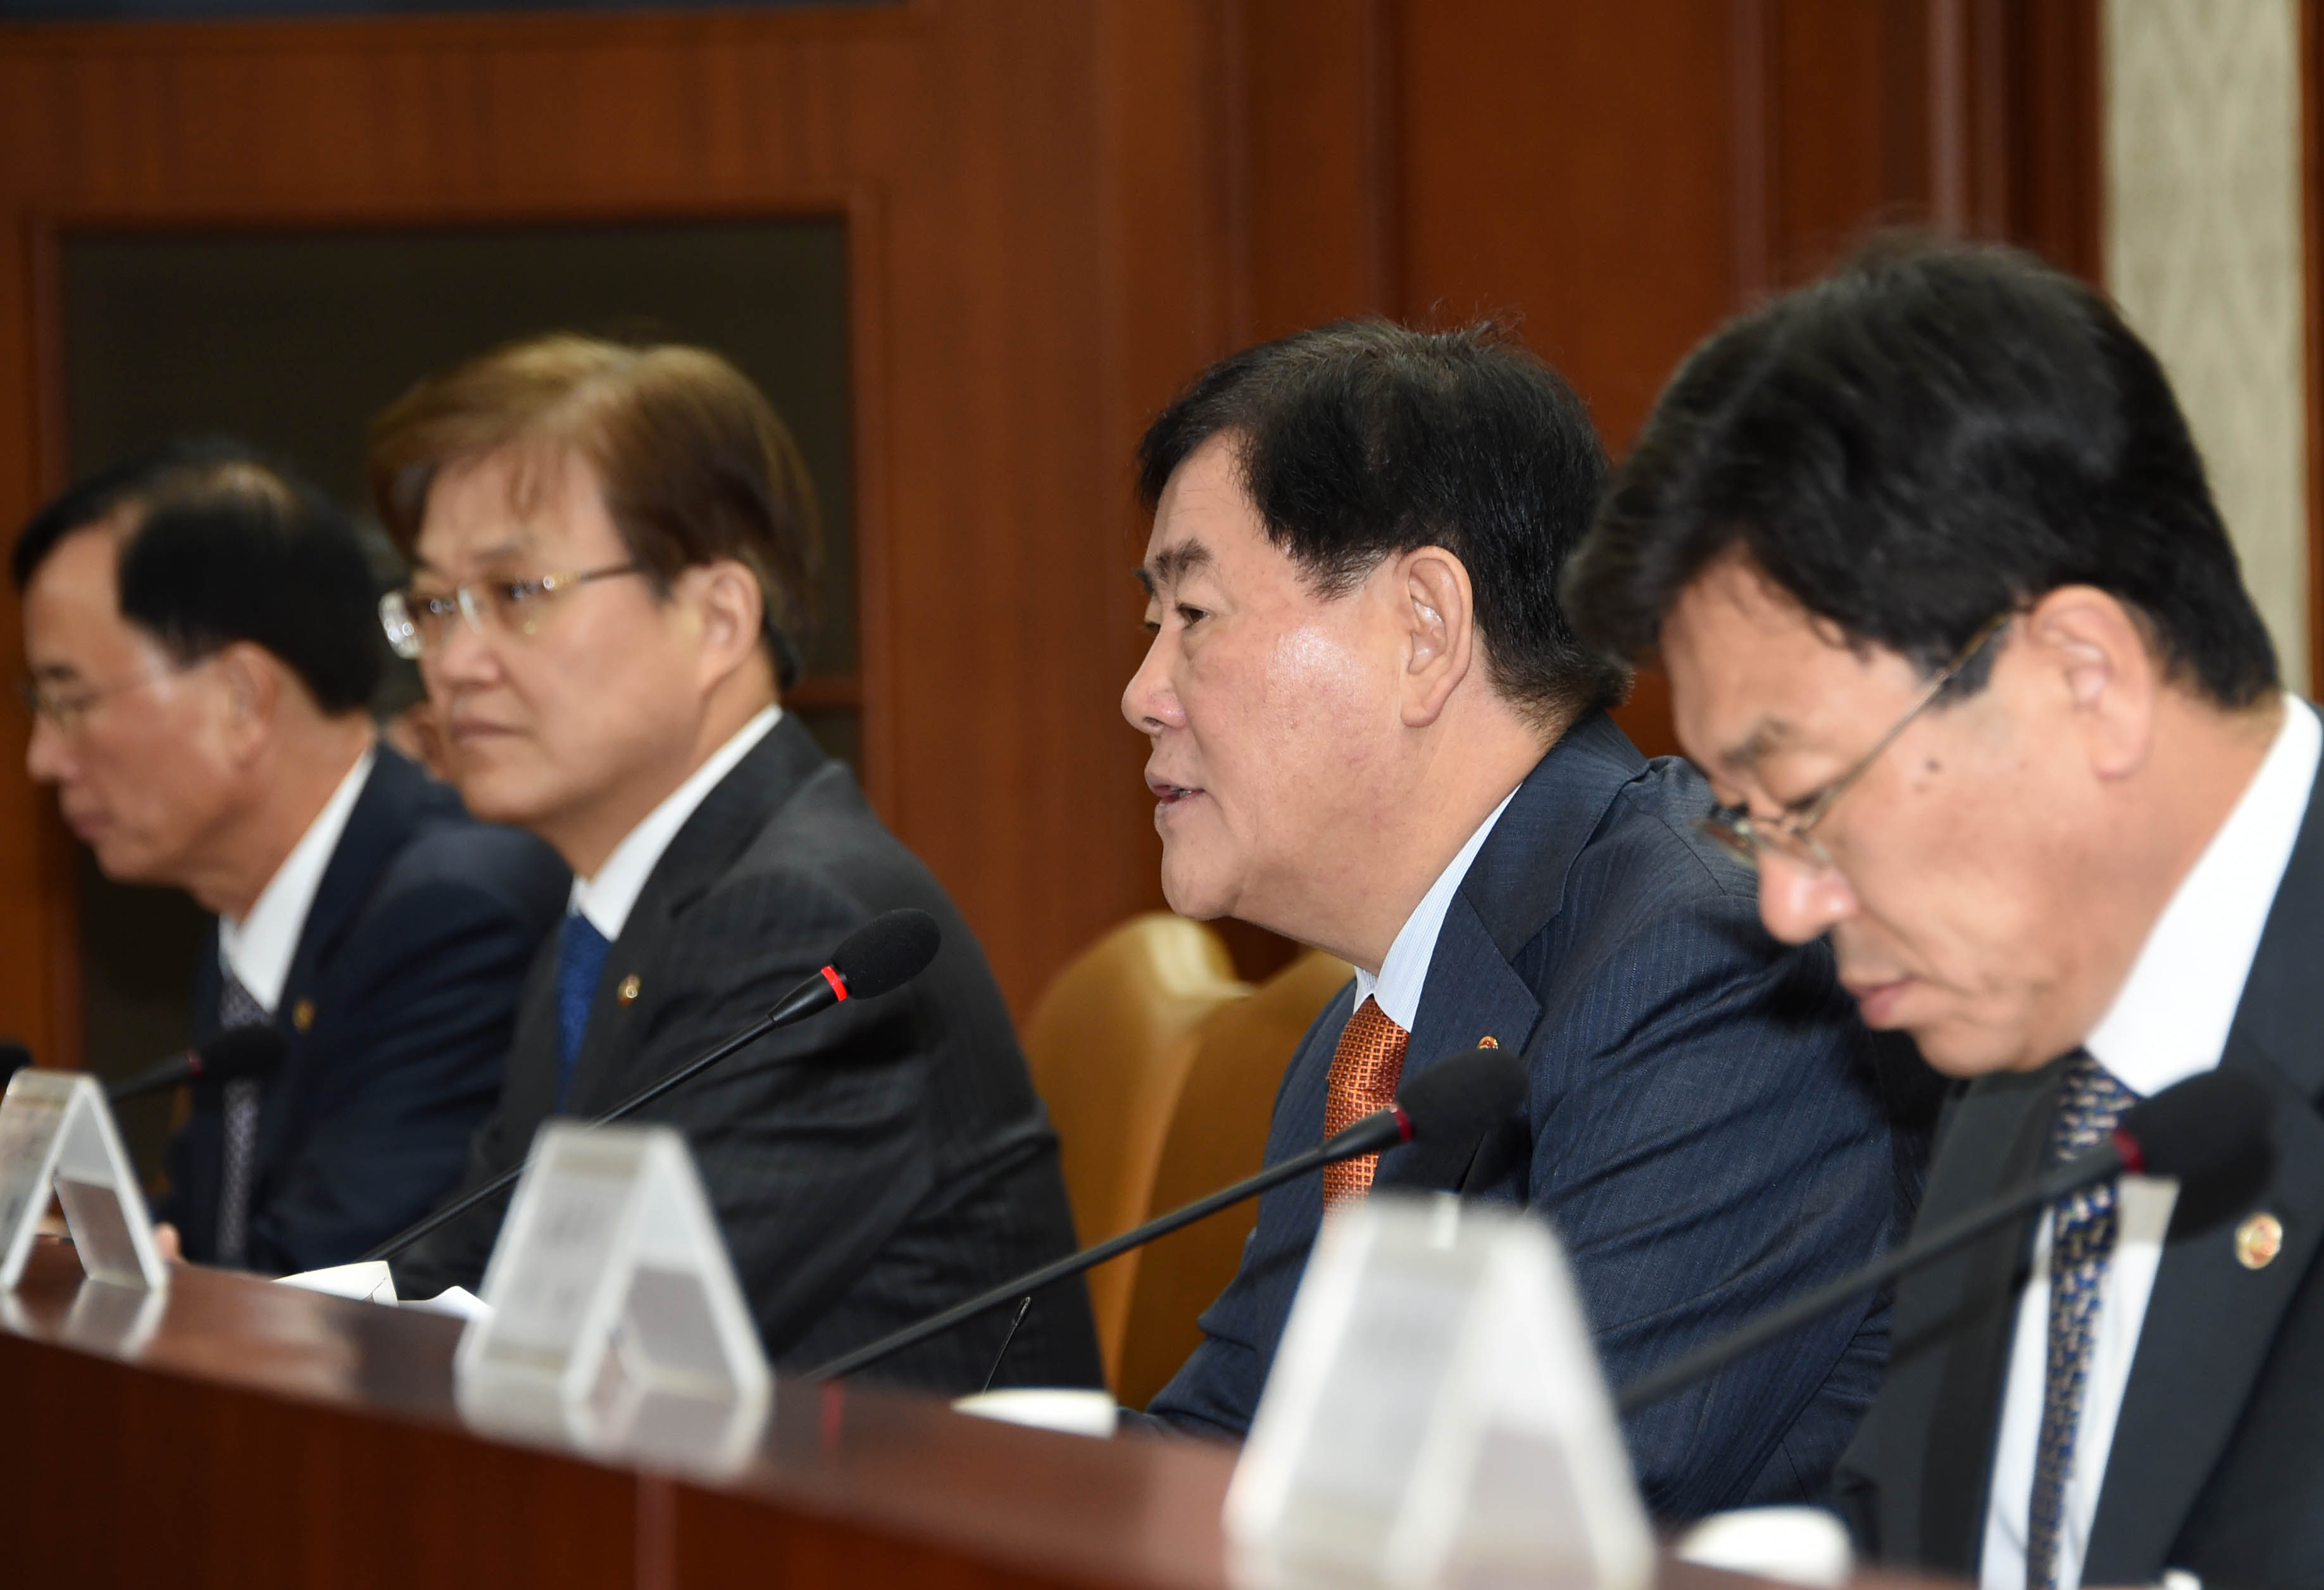 Deputy Prime Minister Choi hosts the 36th Ministerial Meeting on the Economy